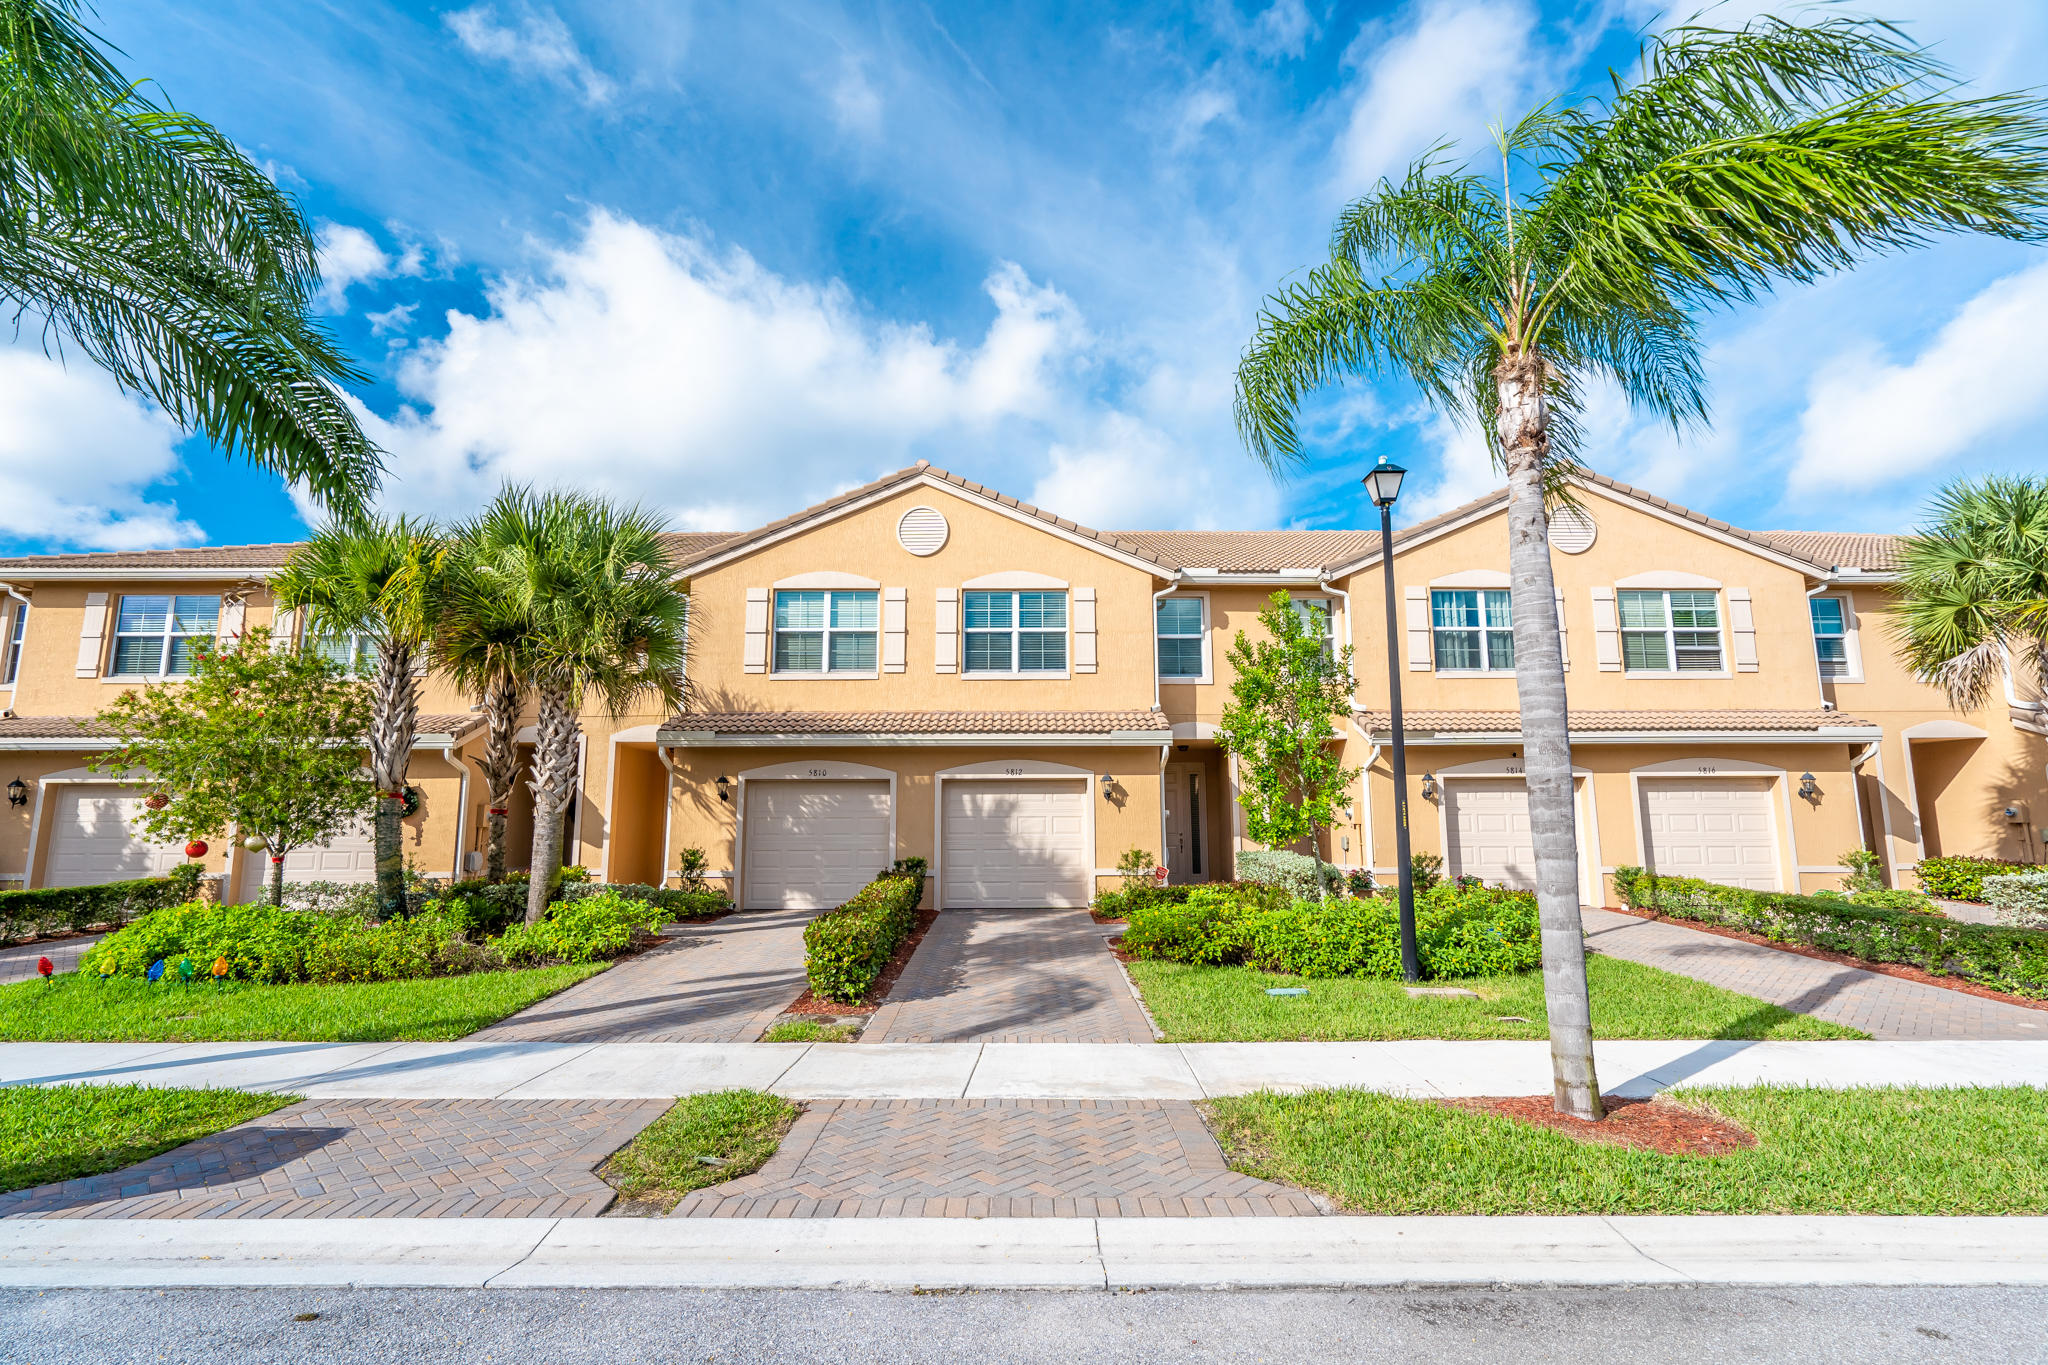 Home for sale in Colony Reserve Lake Worth Florida